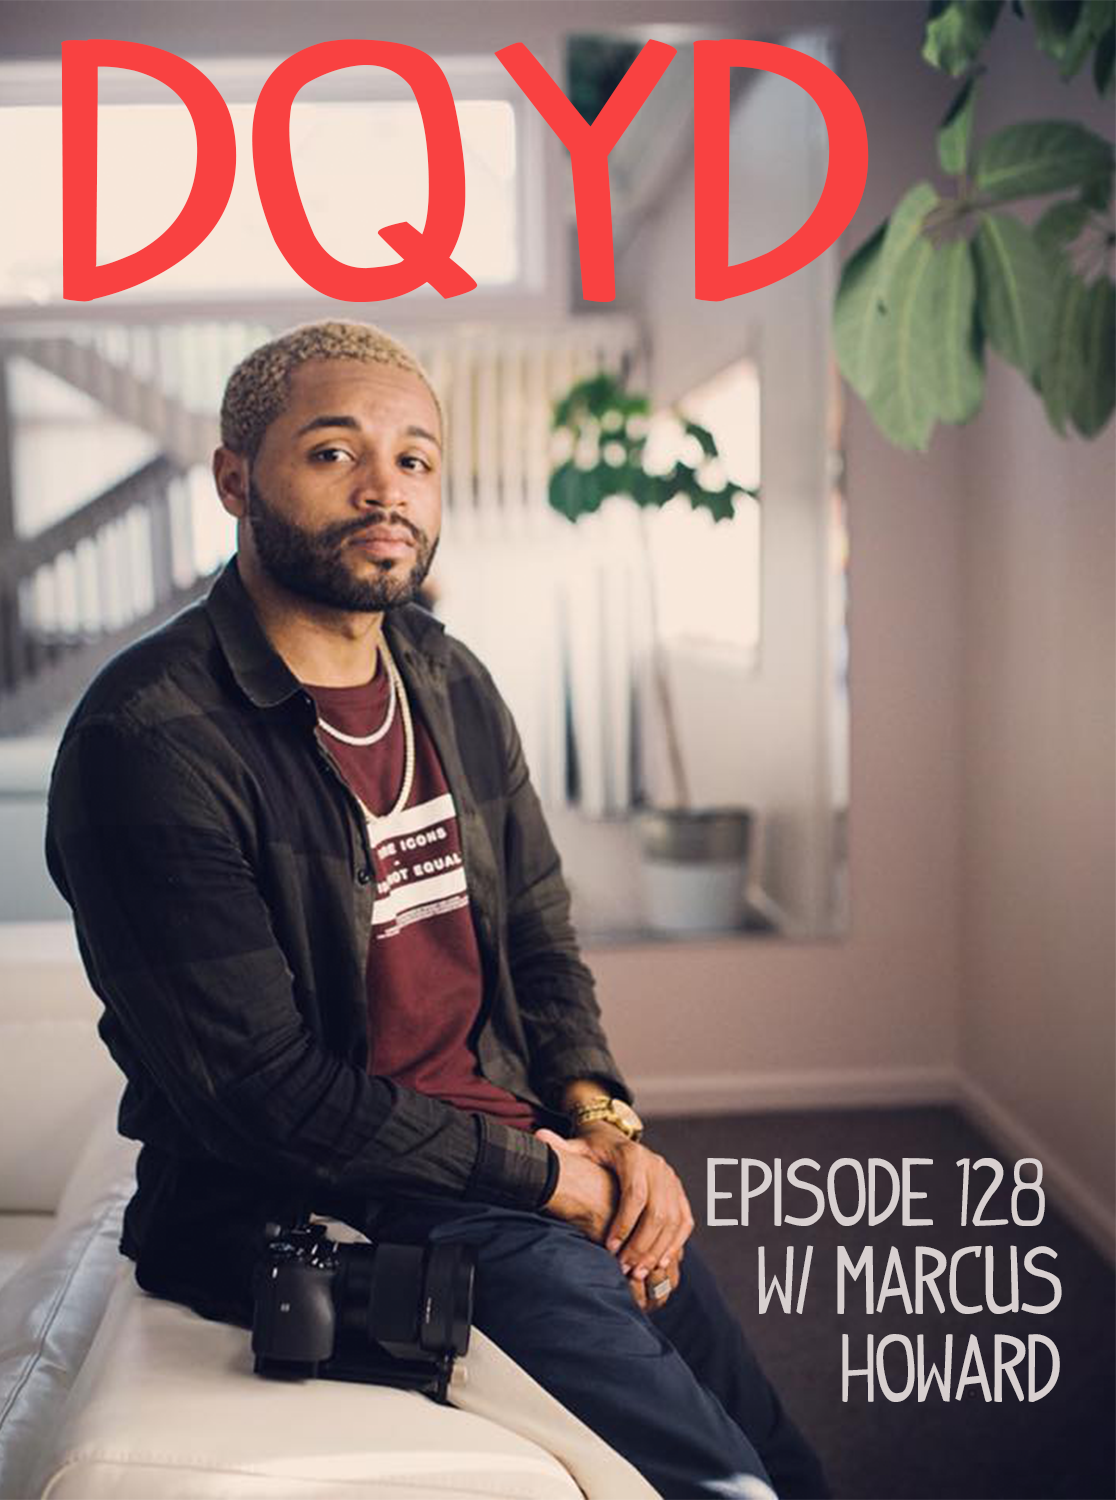 "Episode 128 with the Return of Mental Health Specialist: Marcus Howard! Marcus came back on to detail his continual relationship with depression and how he has found new ways to assist those suffering. We discuss medications, group therapy, drug dependency and more. Mental health is an important topic however the more we learn about it, the better chance we have of controlling it.  Featured on this episode is music from rad hip hop musician, RC Lehmen. We play his track Up!? Which can be found on his new album release ""The Shadow of a Dream"". Download yourself a copy now: https://soundcloud.com/rcthemc/tracks"